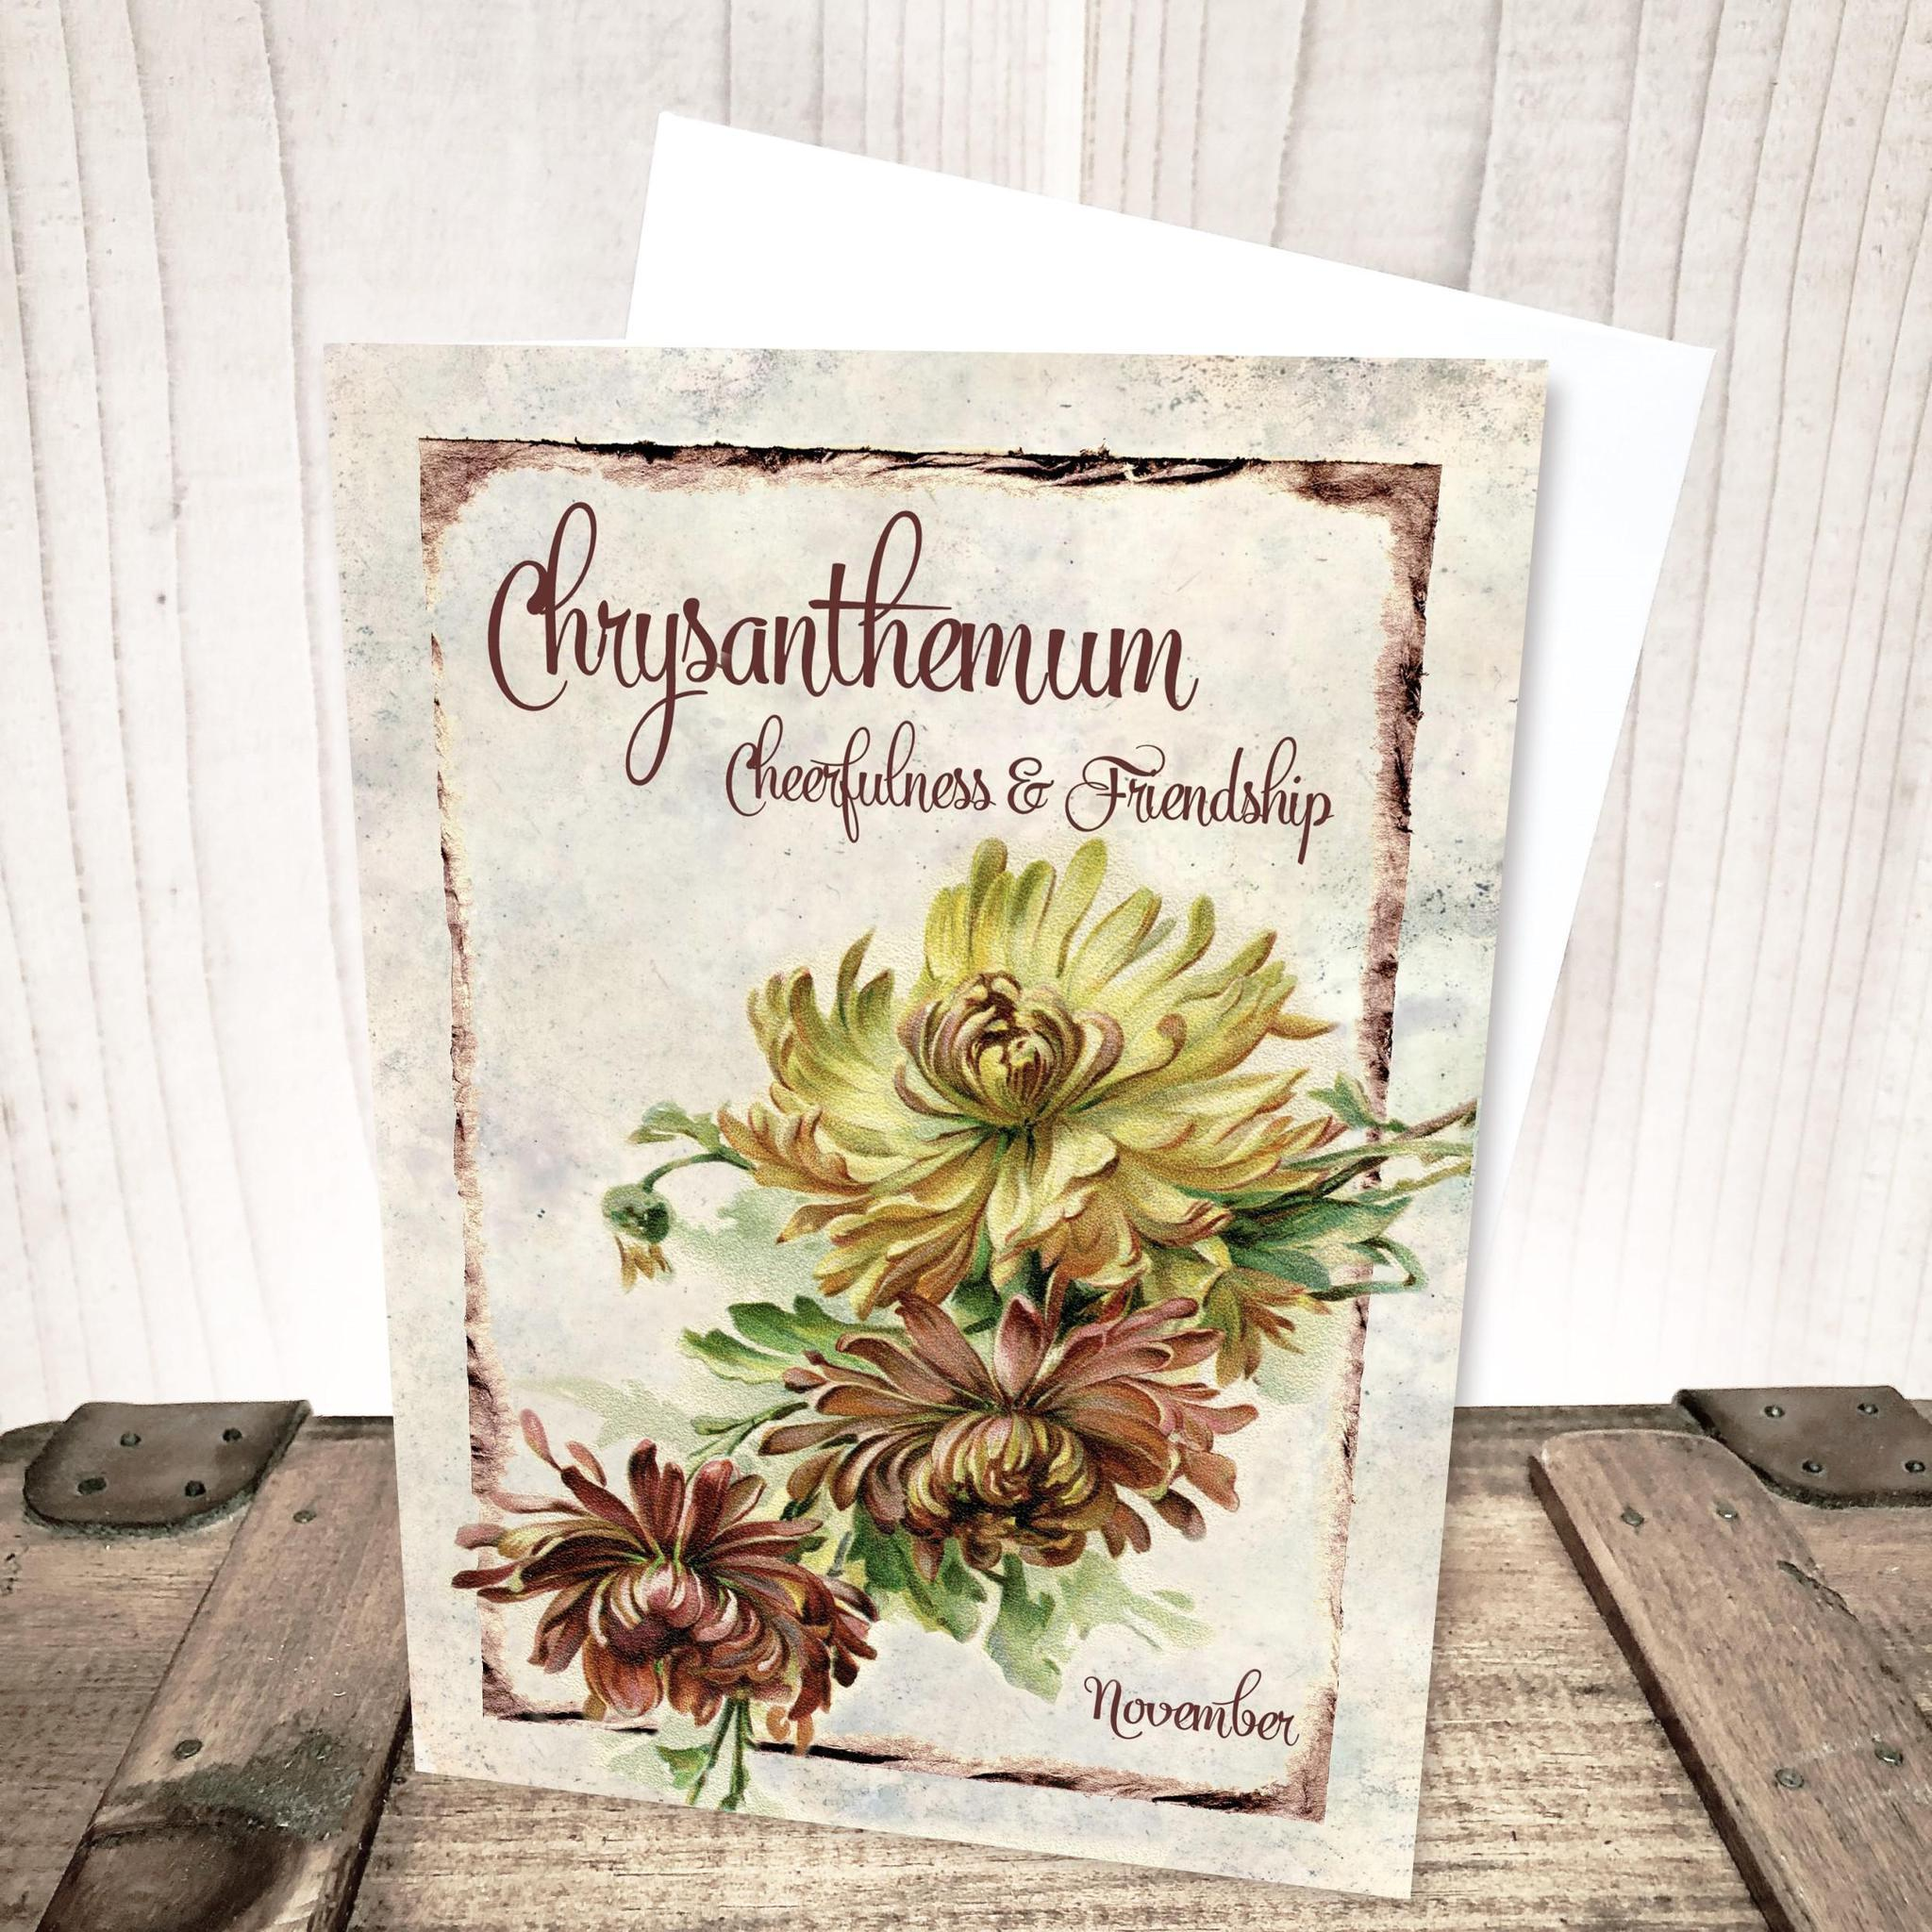 November Chrysanthemum Flower Card by Yesterday's Best